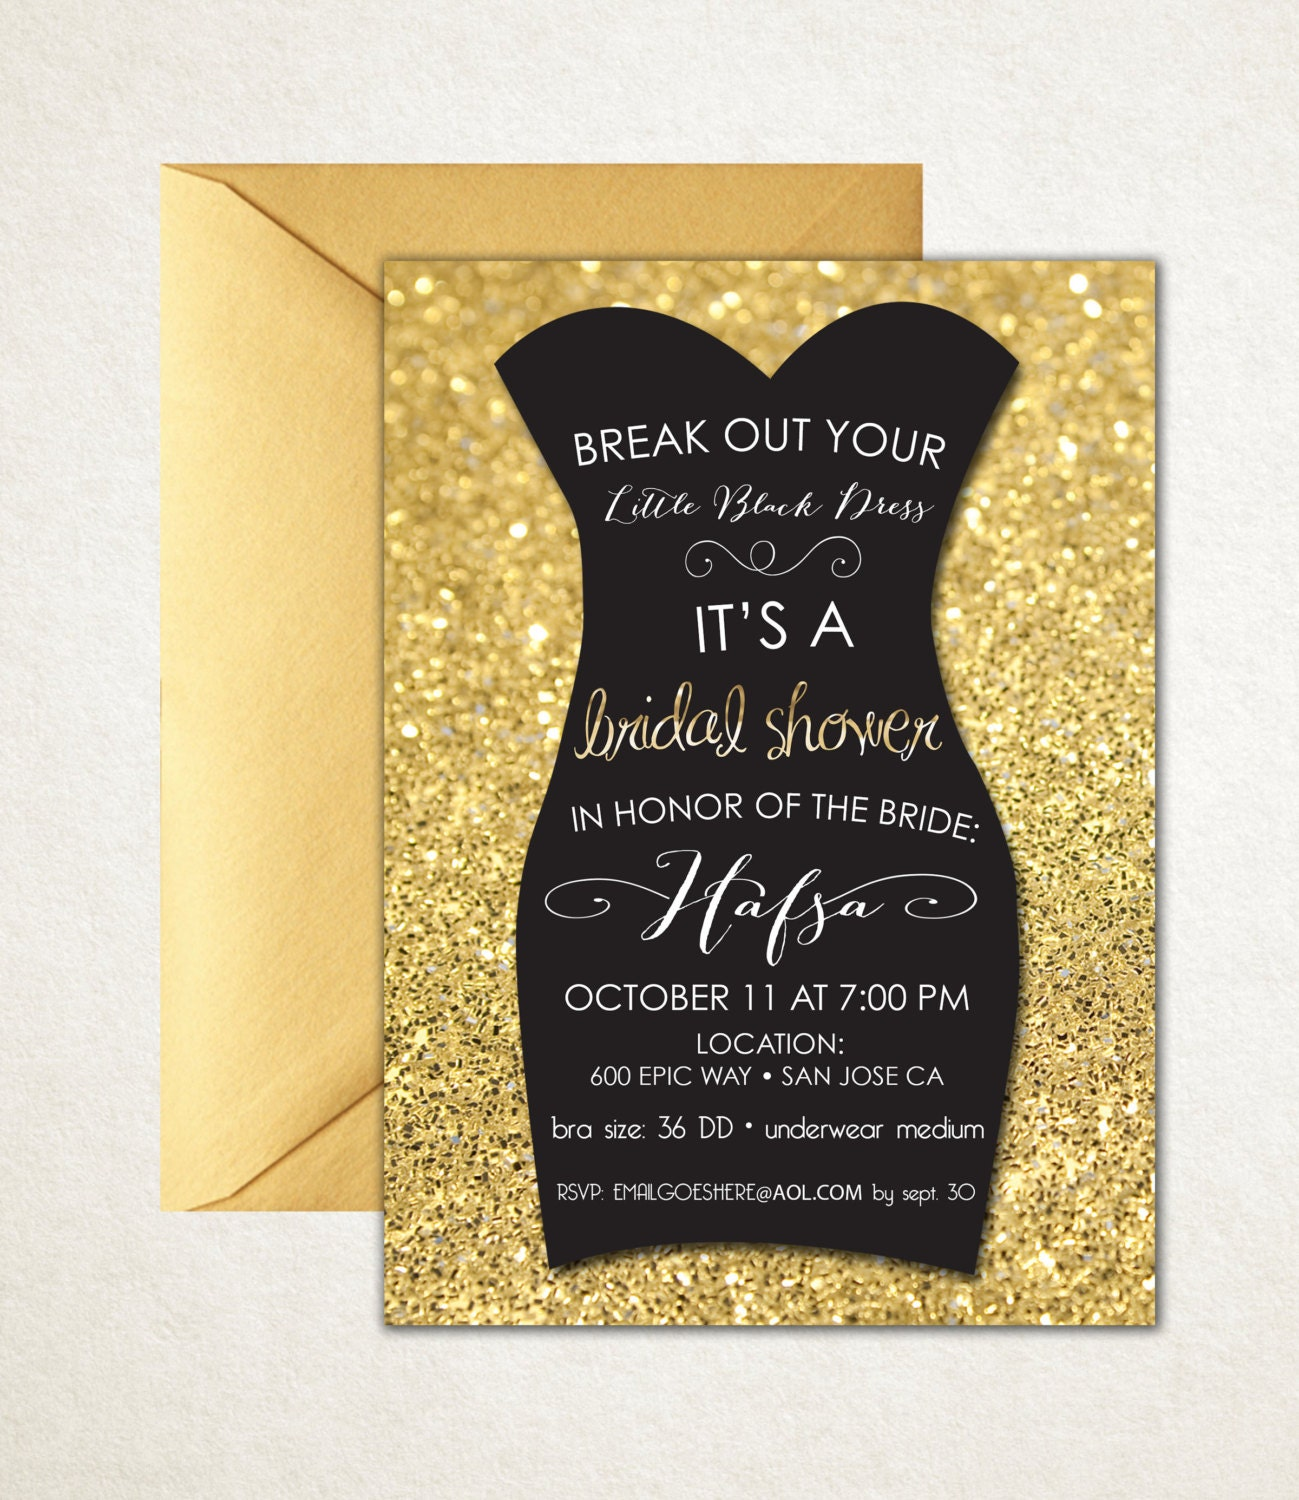 Little black dress bridal shower invitation for Wedding dress bridal shower invitations